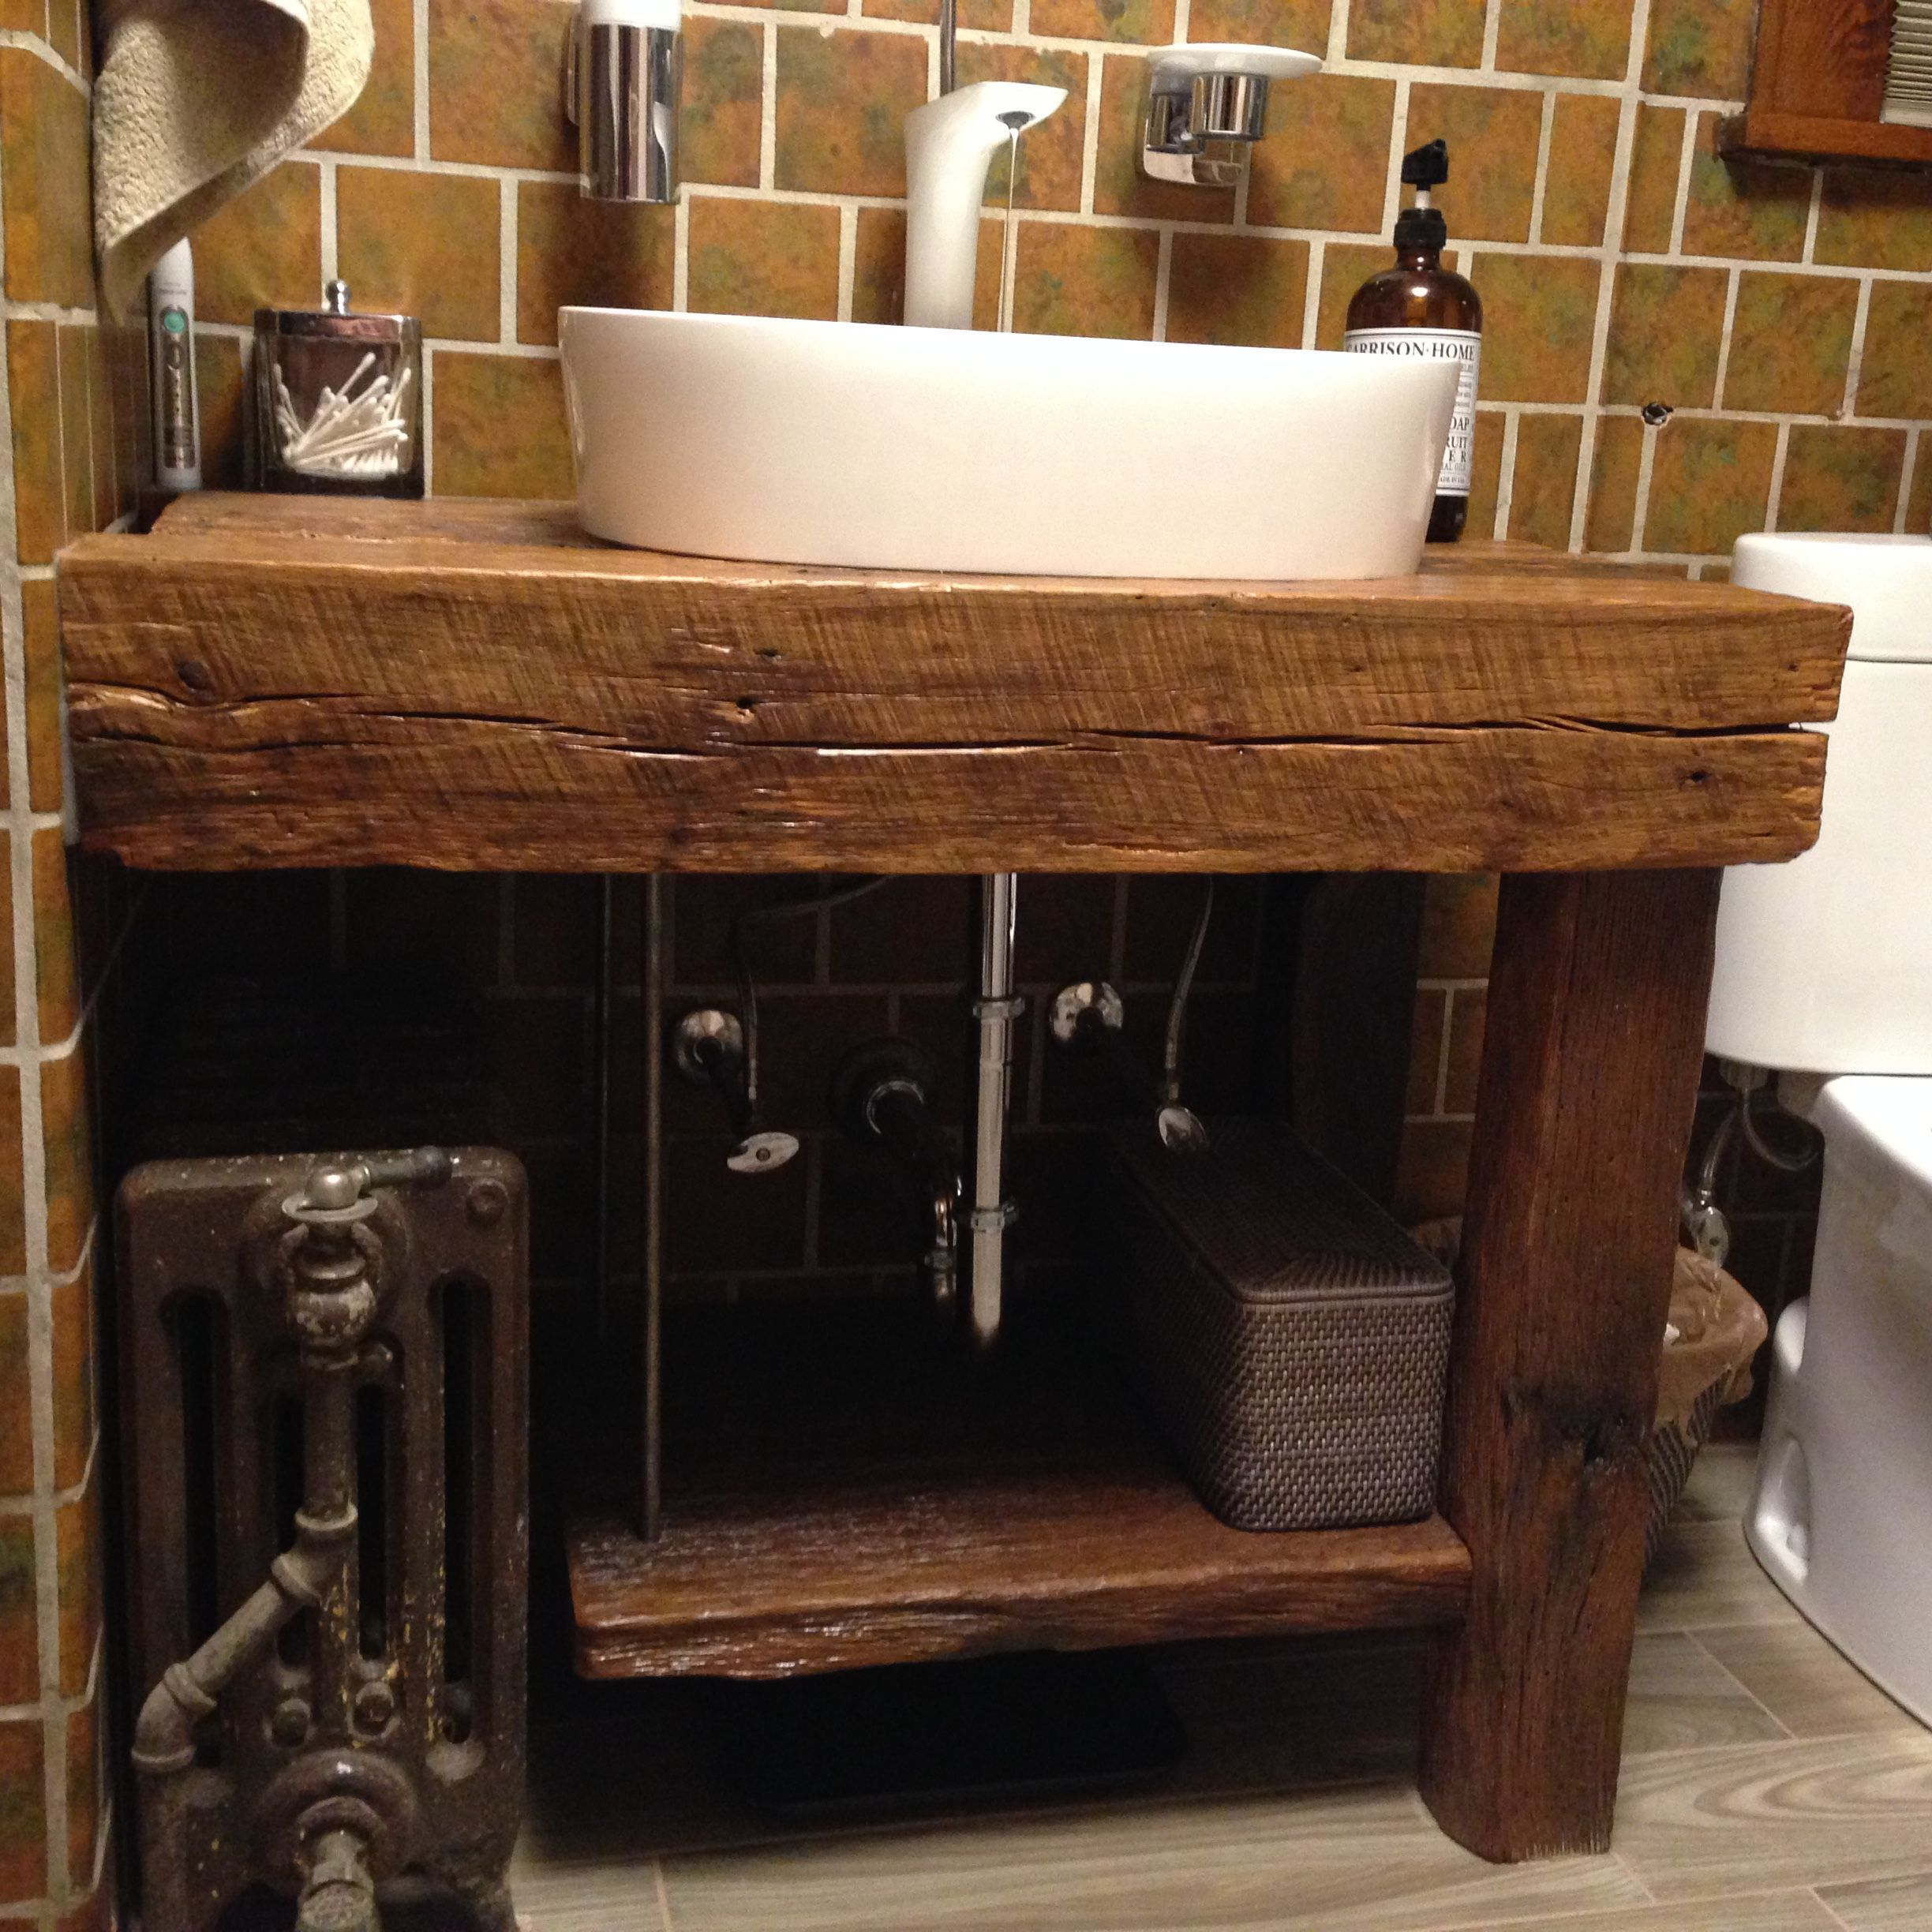 This site has tons of ideas for unique custom made bath